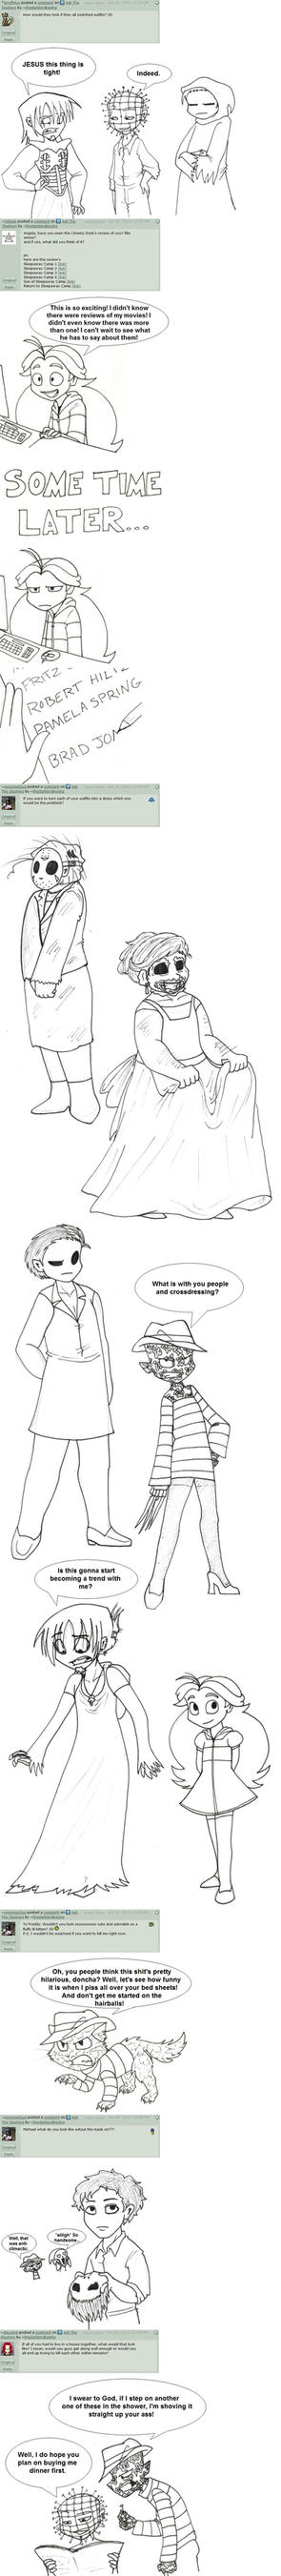 Ask The Slashers Answers Vol. 3 by thedarklordkeisha